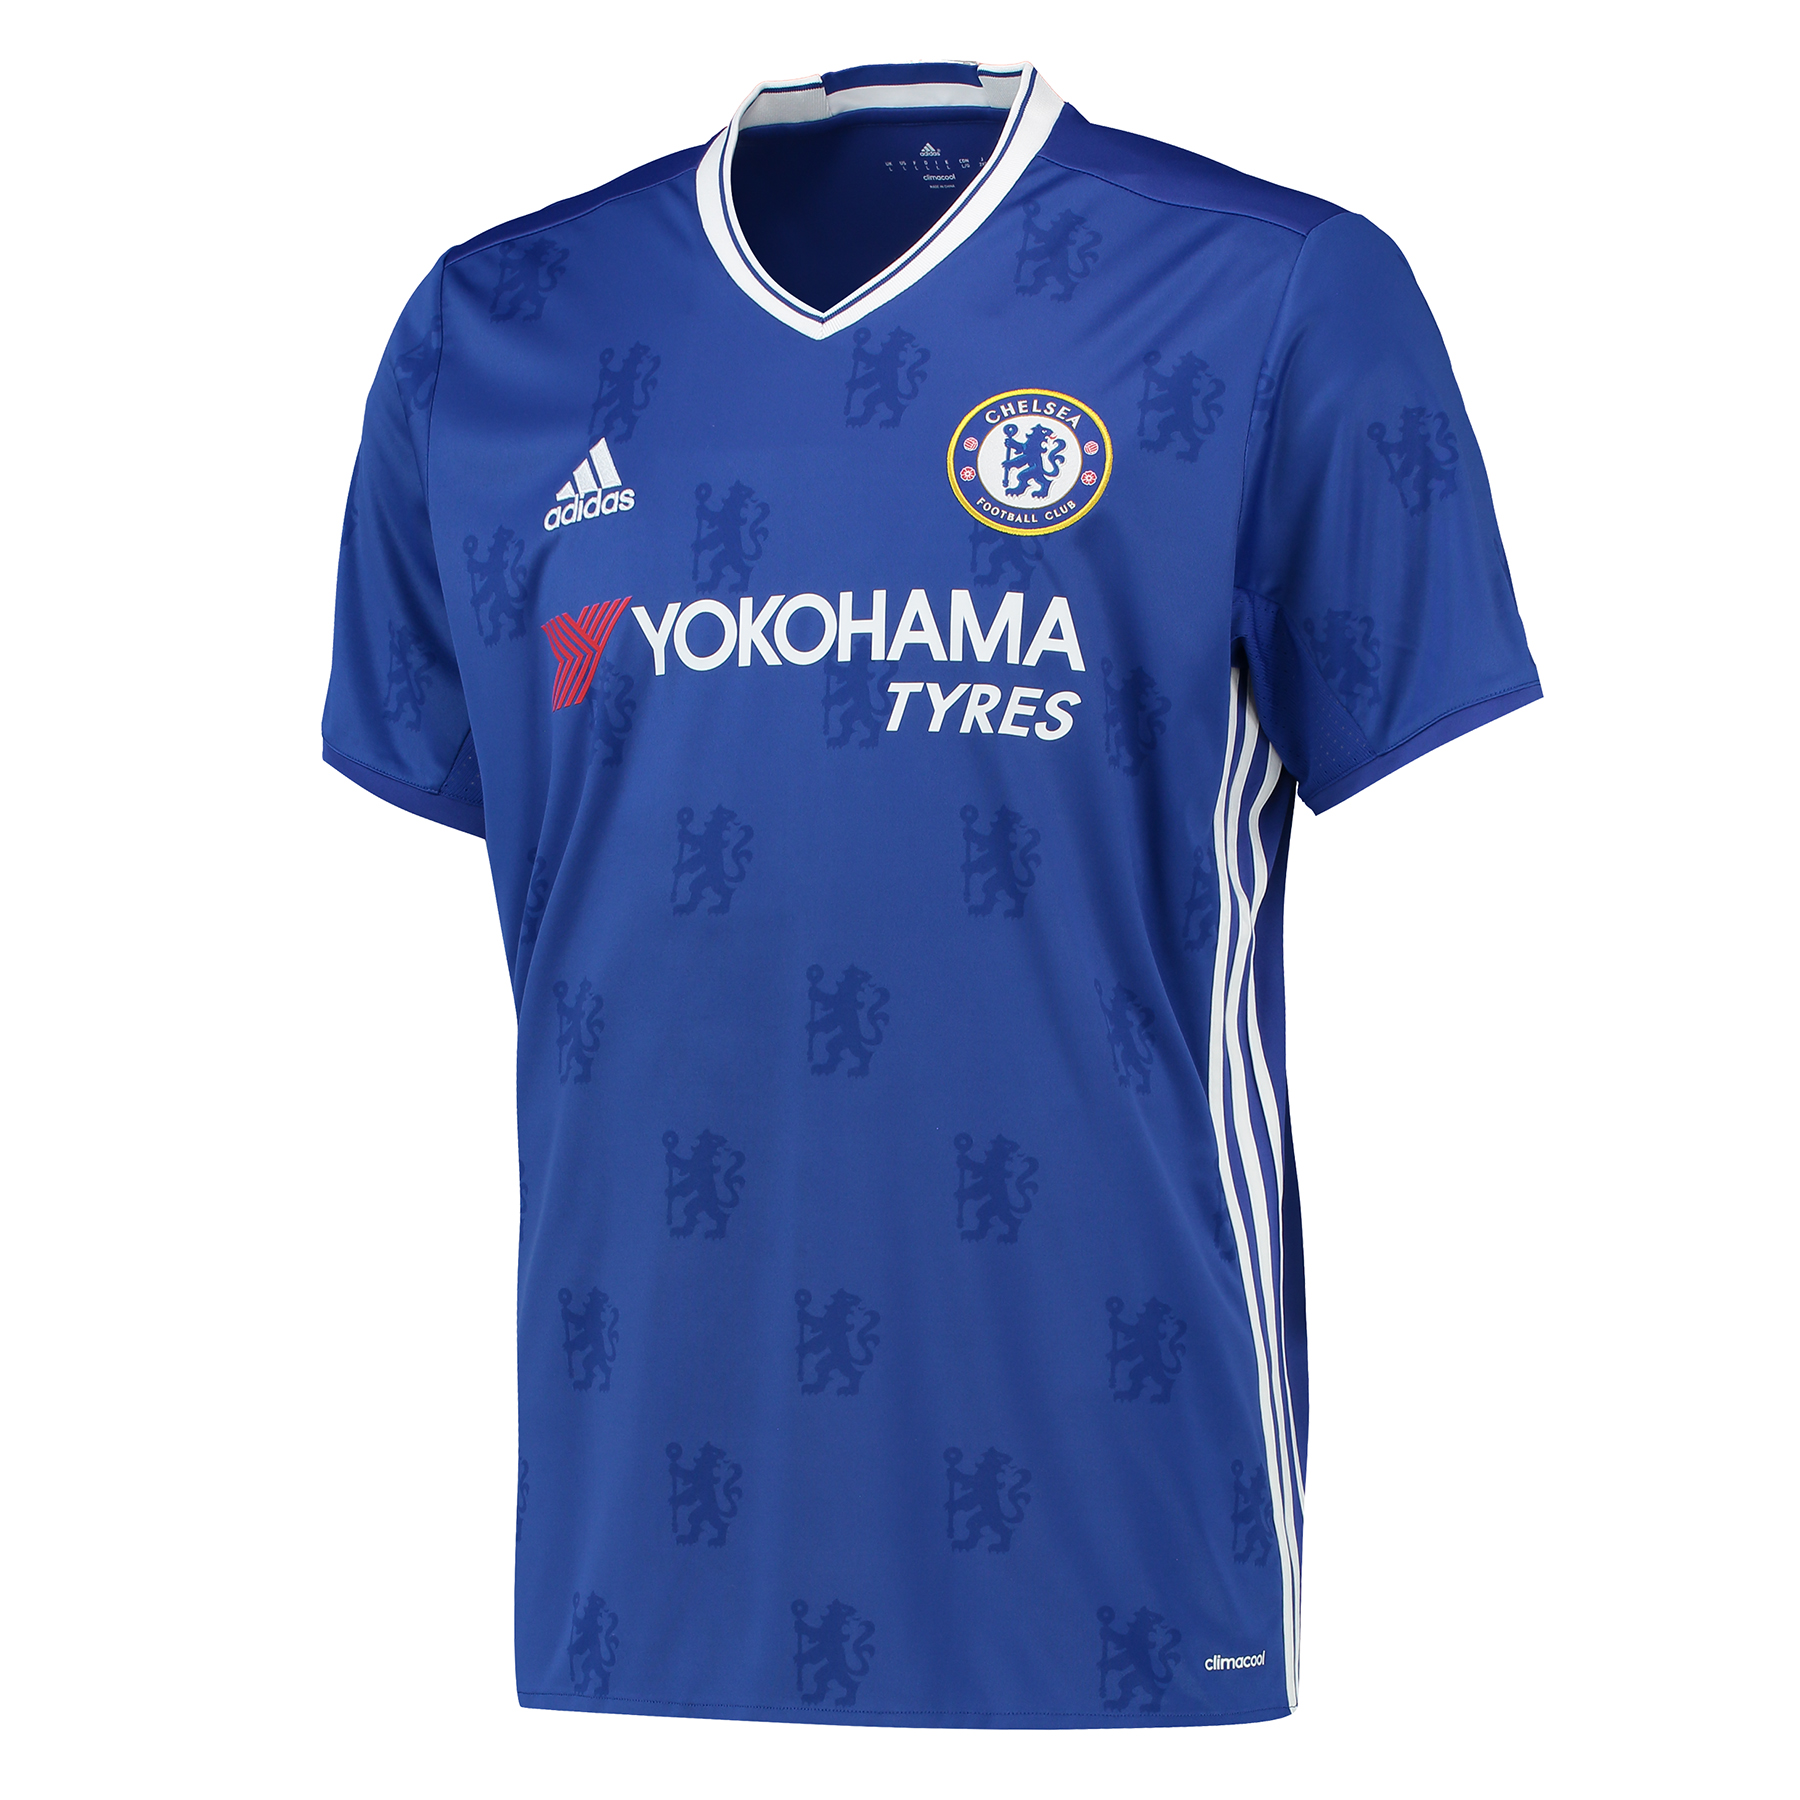 Chelsea Home Shirt 2016-17   Inspired by tradition and shaped by legacy, the official Chelsea Home Shirt 2016-17 restores a classic Stamford Bridge image, with its vintage v-collar drawing allusion to Chelsea sides of yesteryear.   With the club crest's central lion motif forming the basis of a unique, all-over pattern print, the 2016-17 Chelsea home jersey's Three Stripe branding features in a contemporary side placement, completing a winning mix of old and new for the Blues' renewed title challenge.   Benefits:   Climacool® heat and moisture management Printed fabric Club crest: woven badge Engineered Chelsea FC sign off on collar 100% recycled polyester